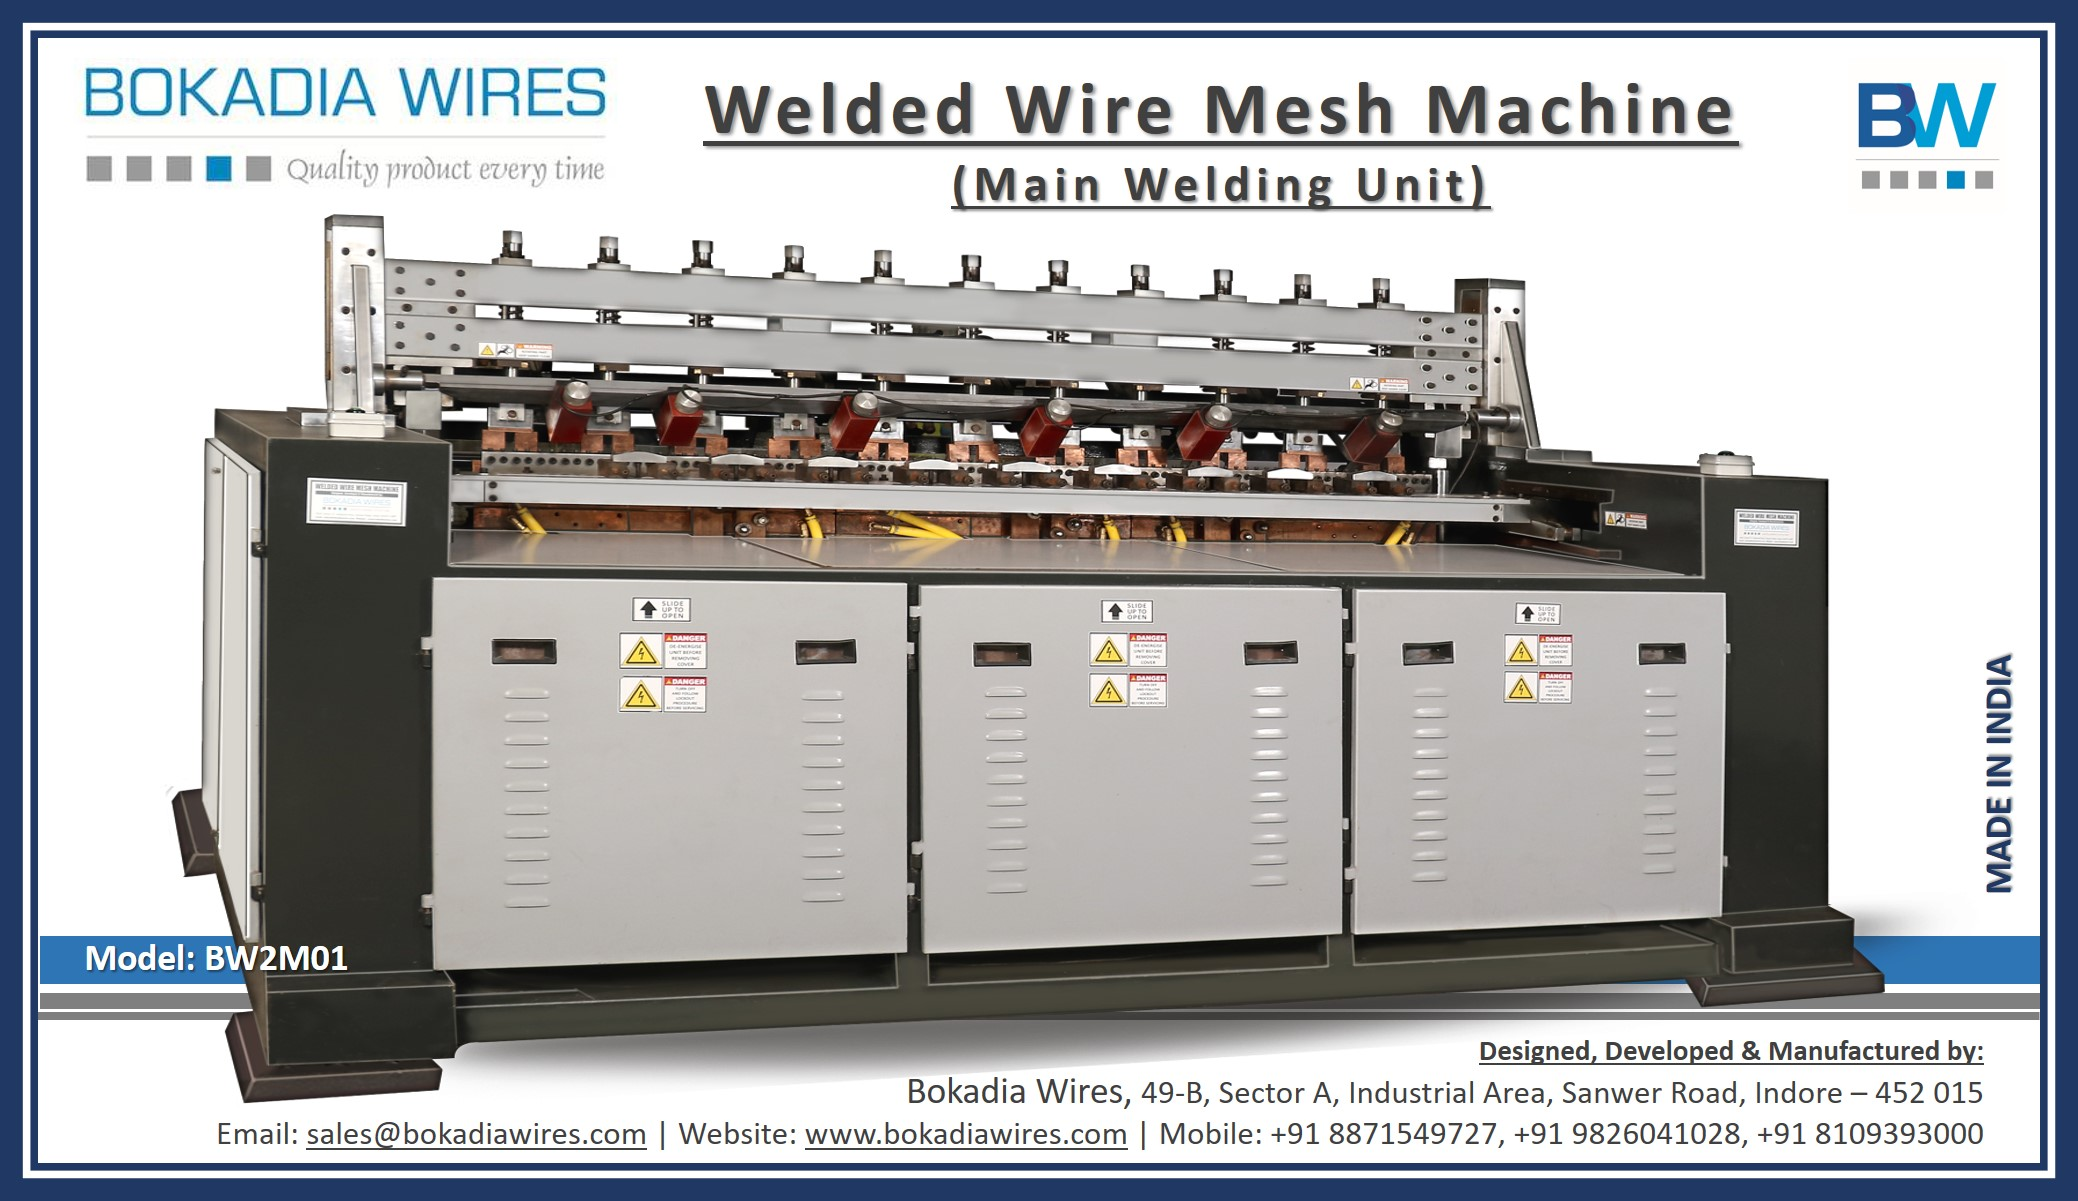 Main Welding Unit (Model: BW2M01)